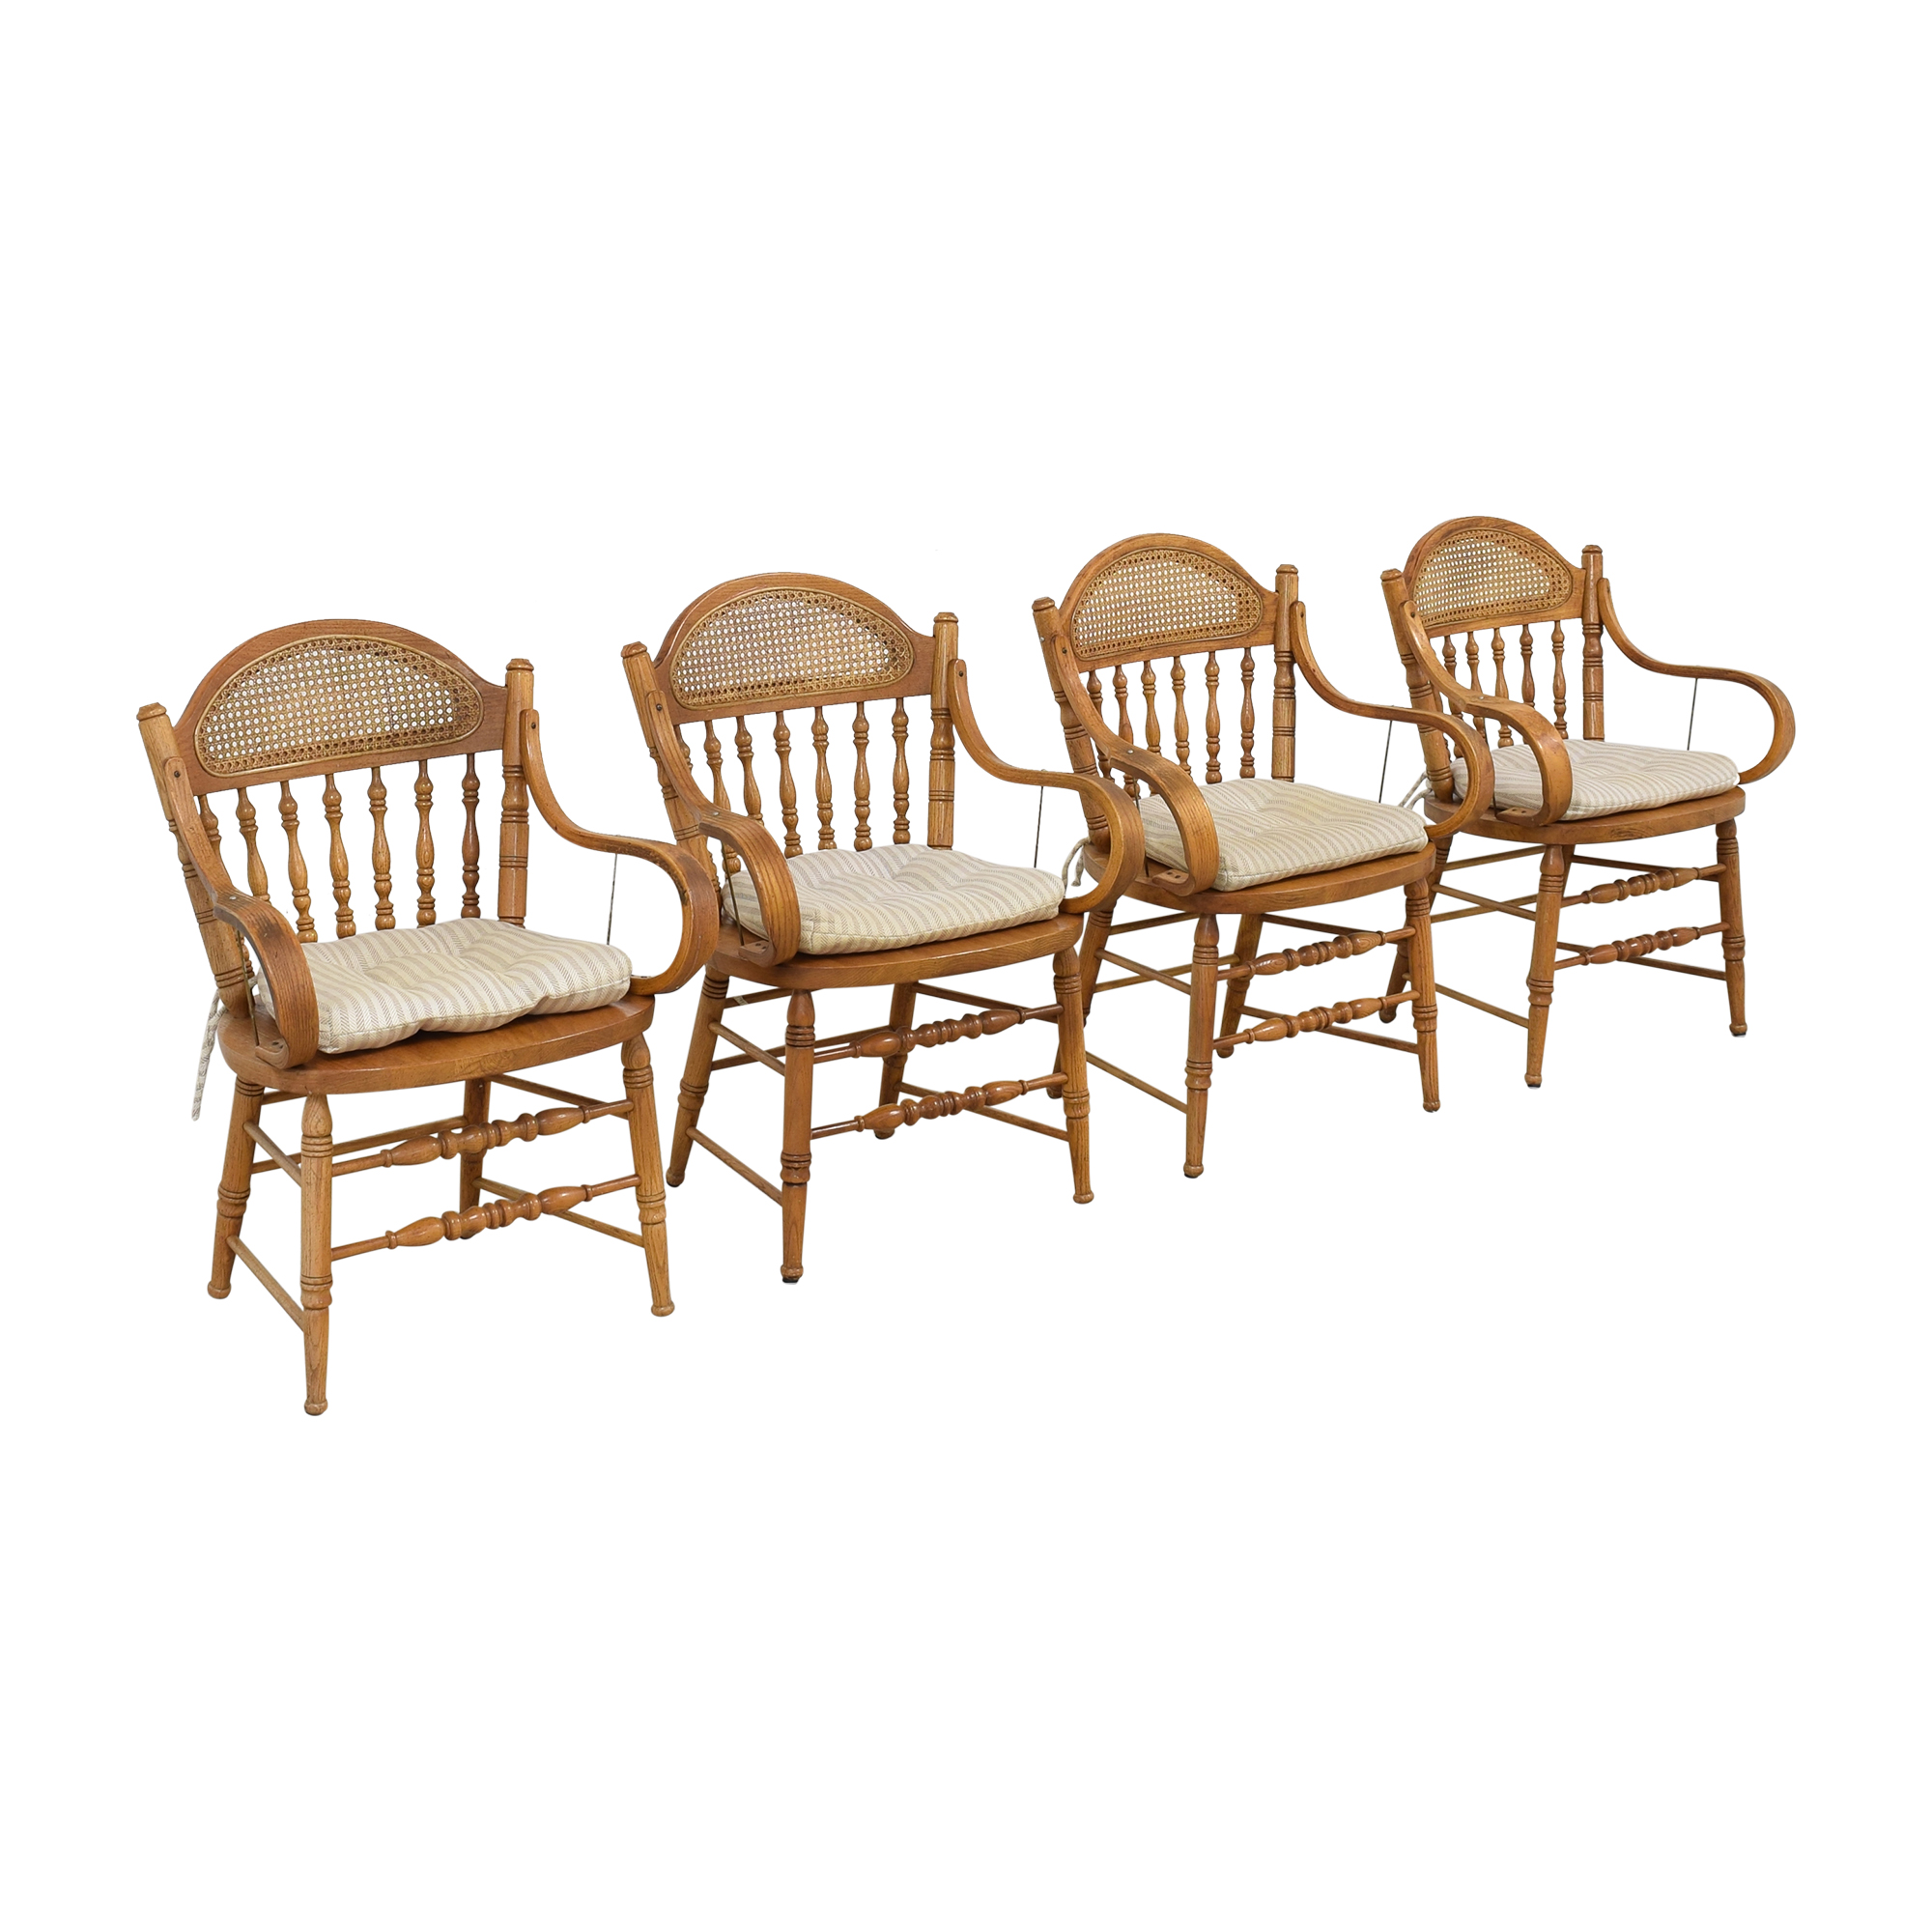 Oak Dining Arm Chairs with Cushions Chairs